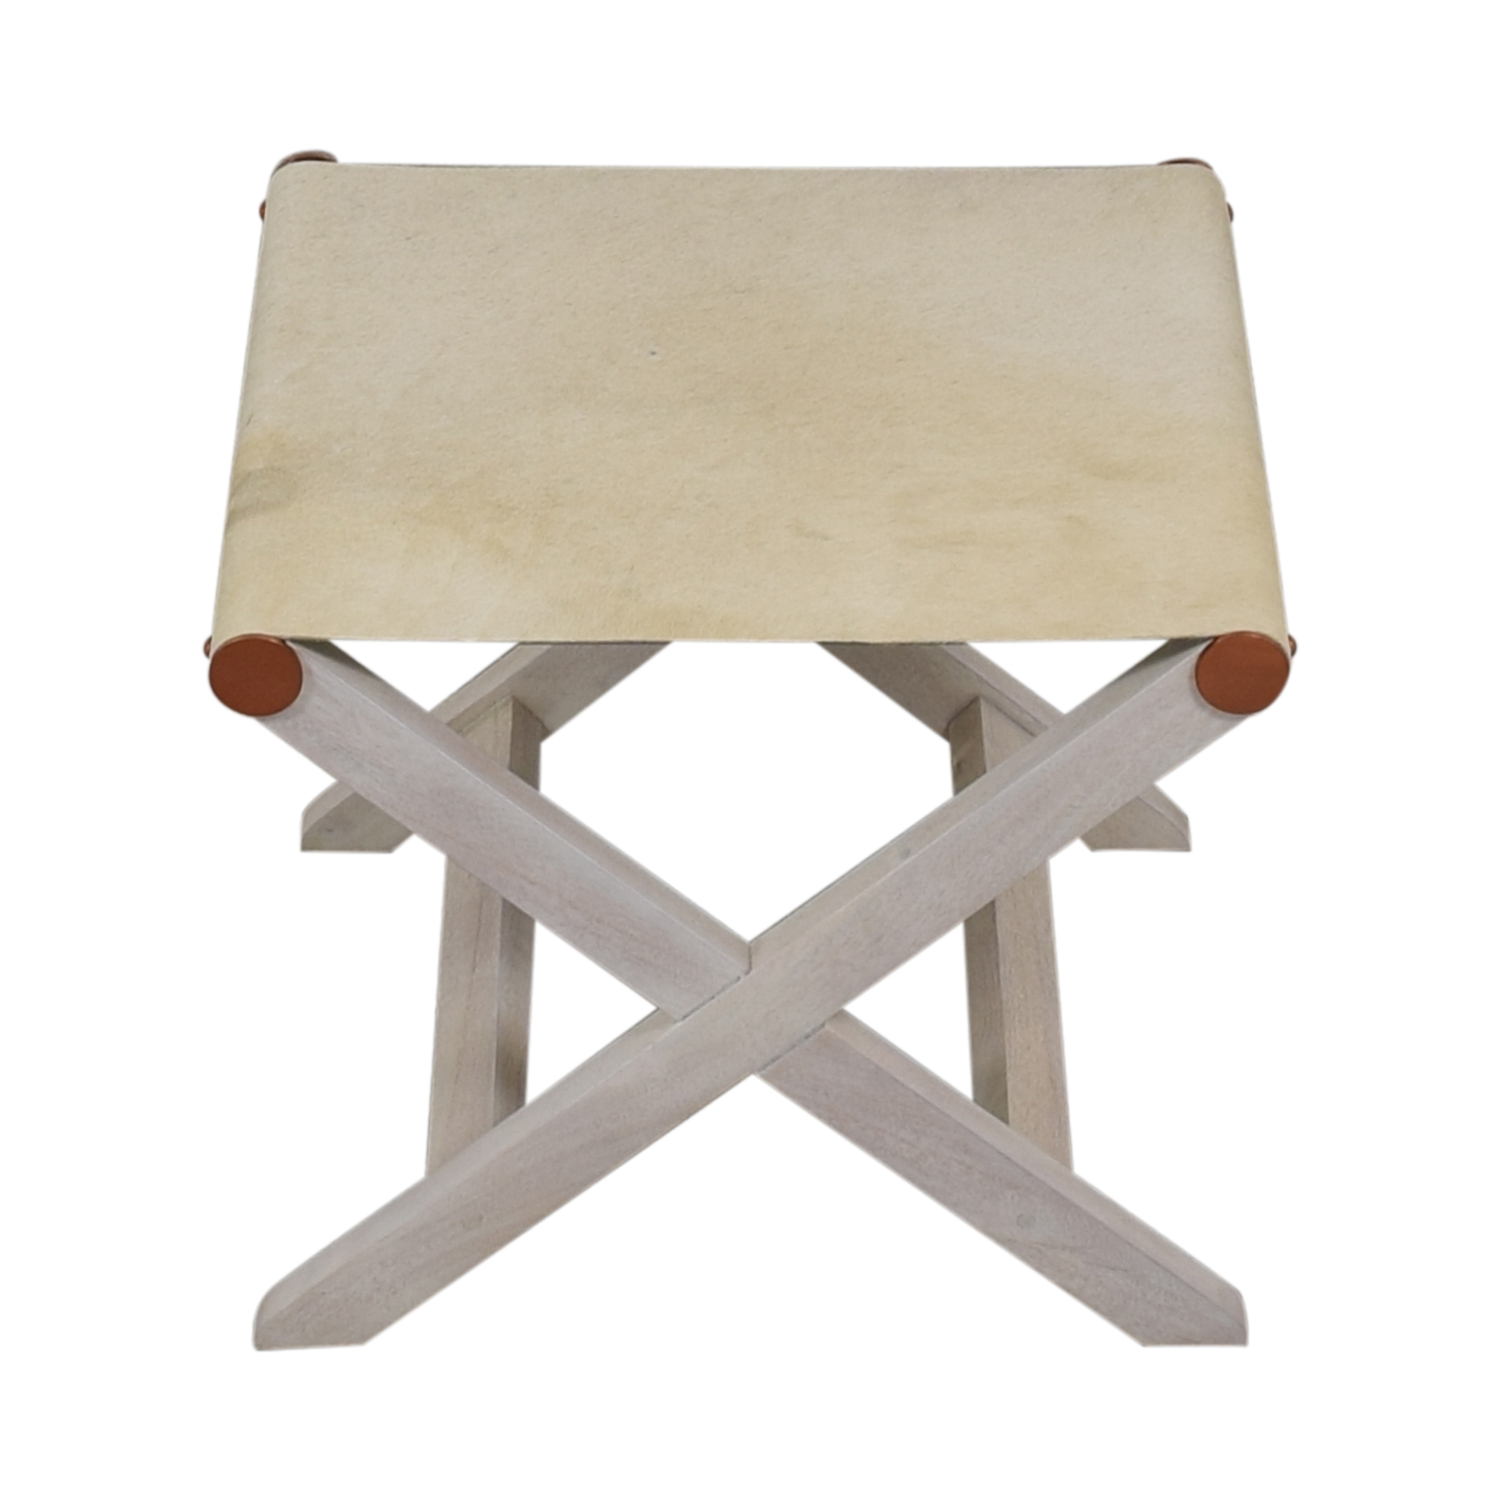 CB2 CB2 Curator White Hide Stool used